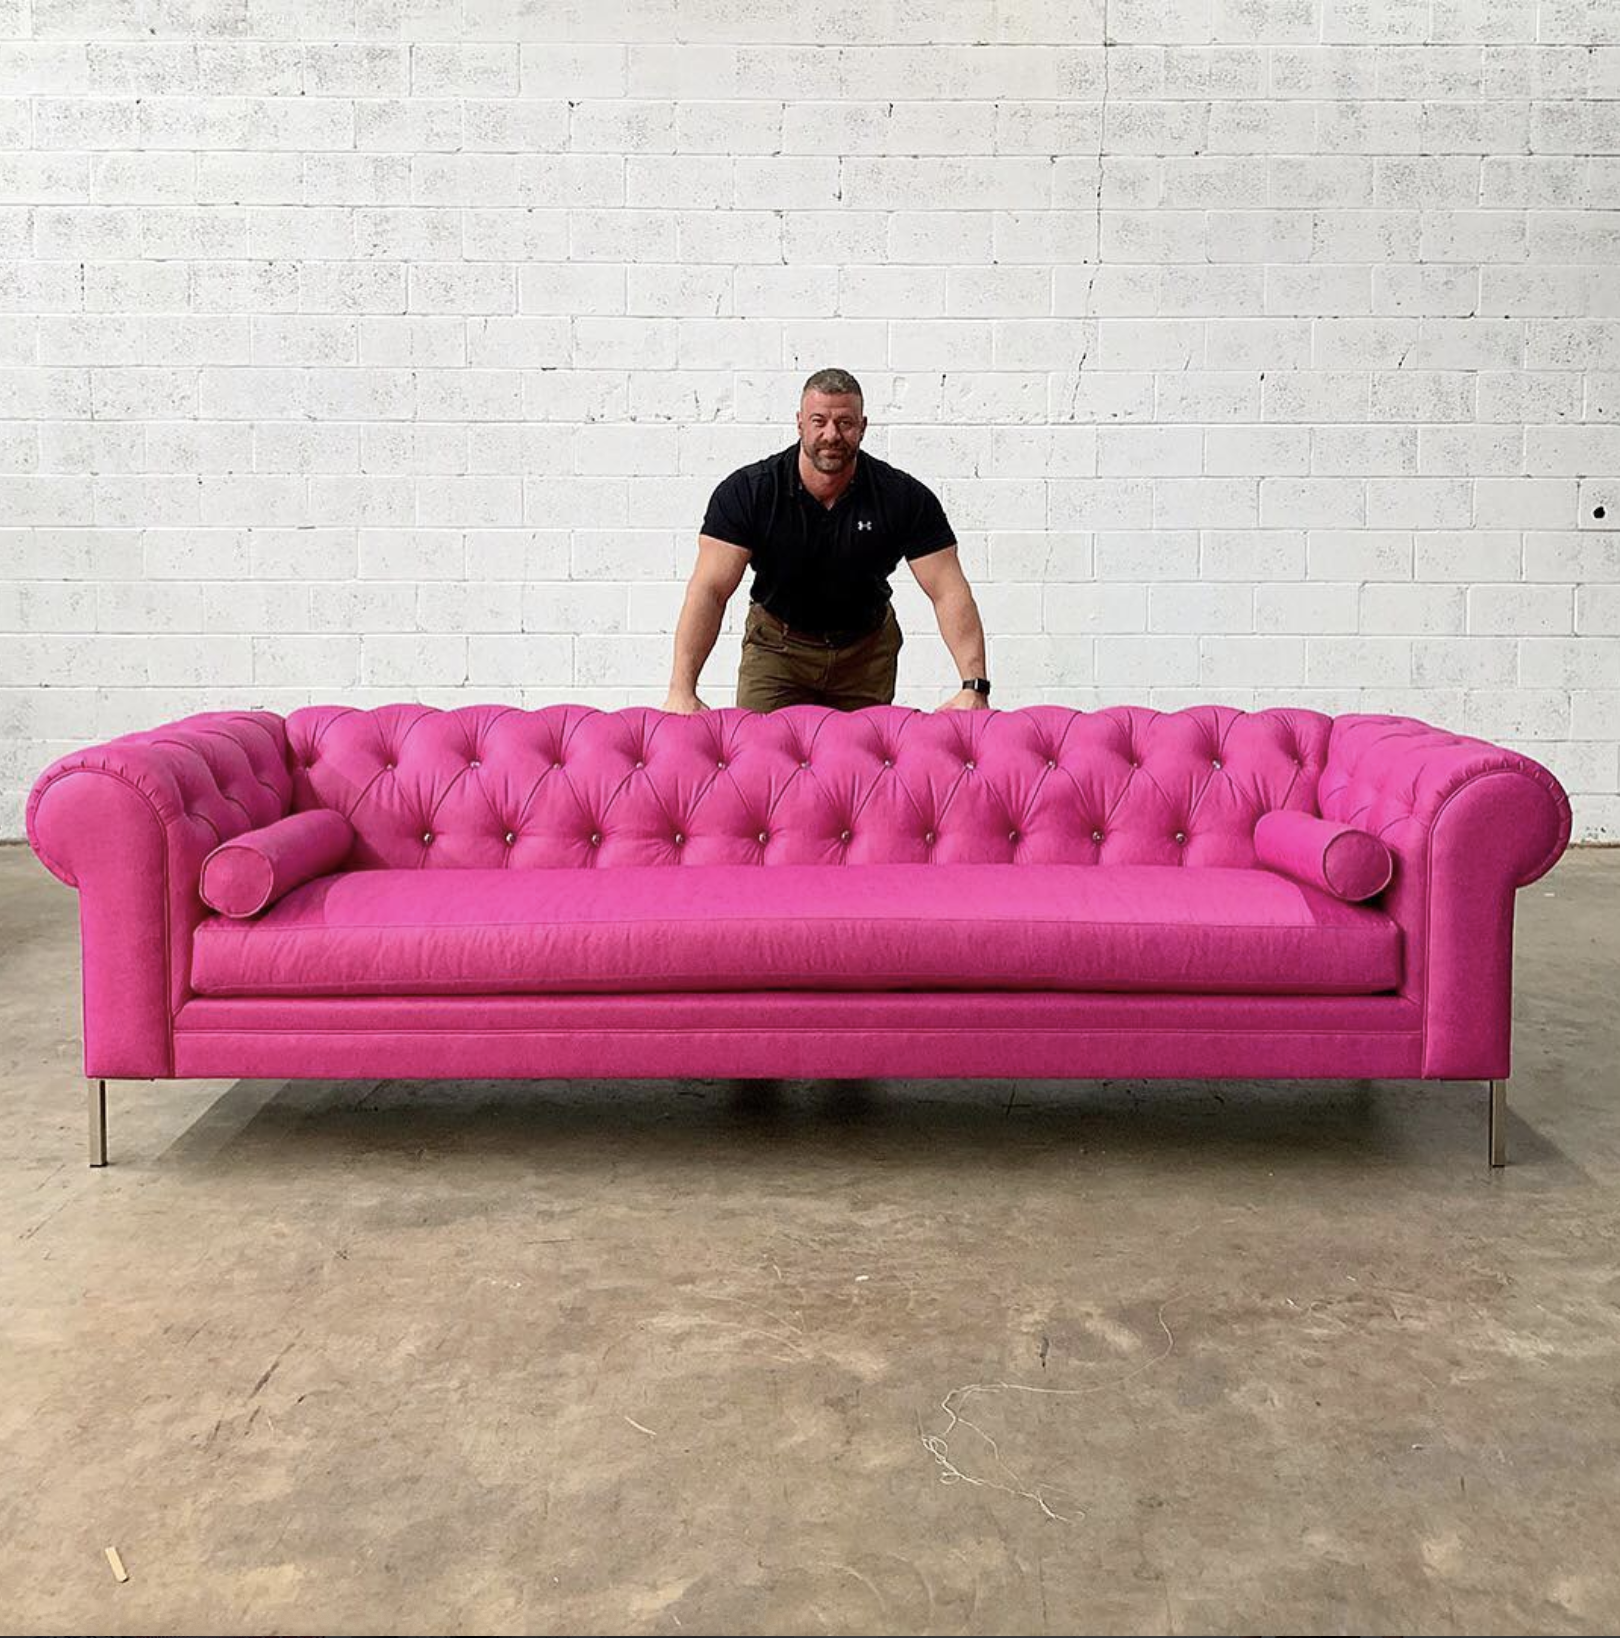 Pink Chesterfield Sofa Tufted Pink Sofa Modern Pink Sofa Pink Chesterfield Sofa Modern Chesterfield Sofa Pink Sofa